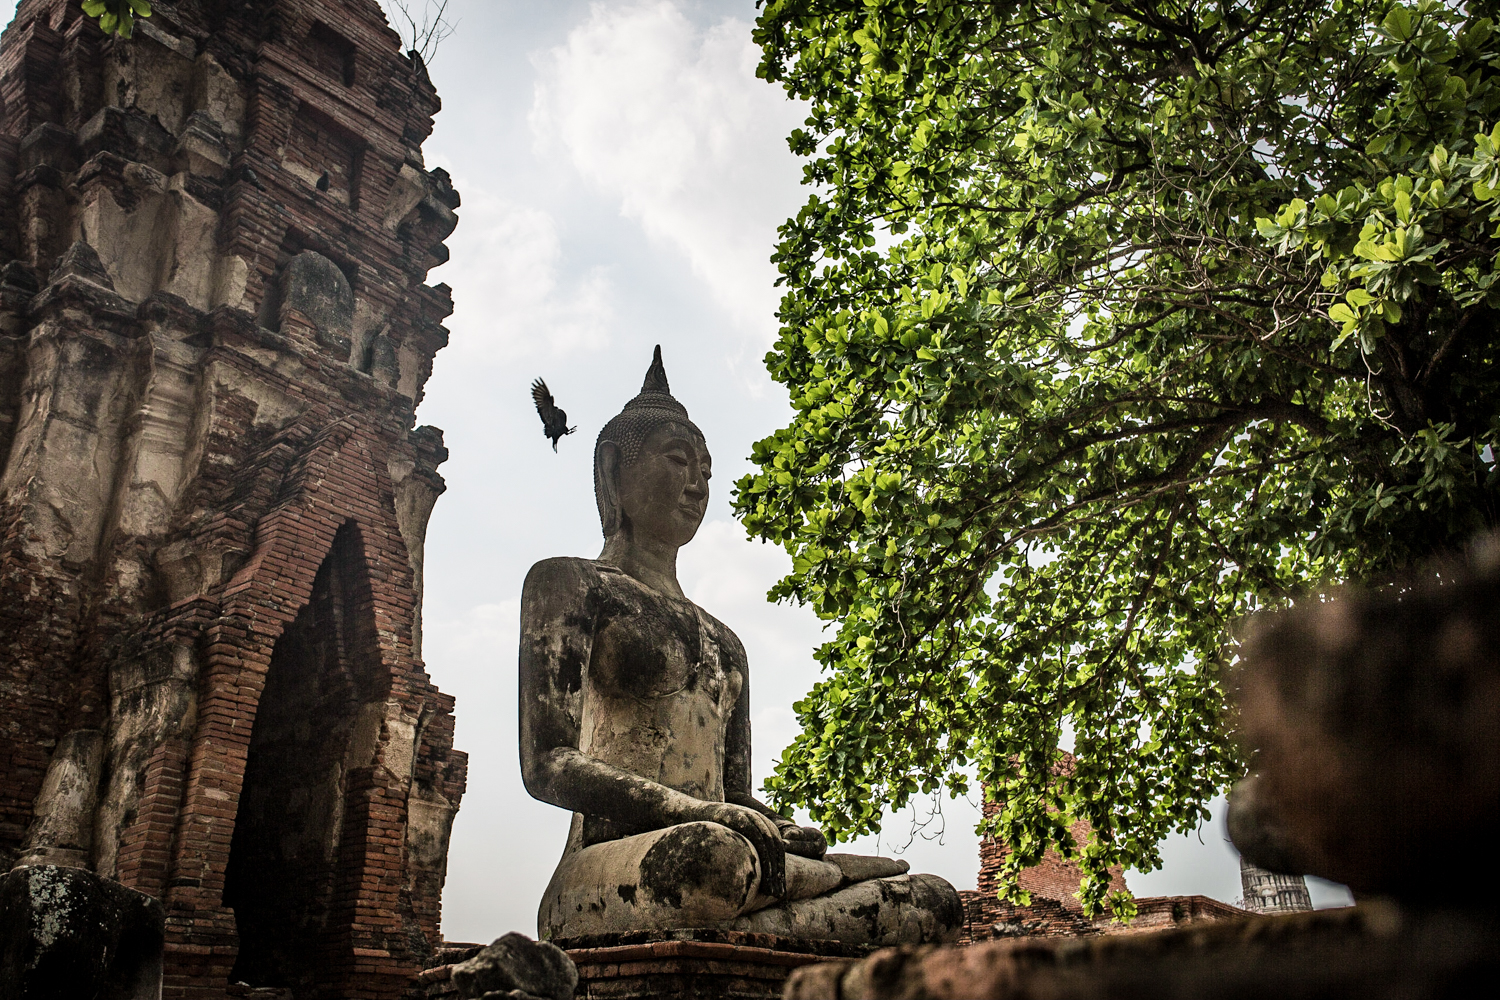 A statue of the Buddha at Wat Maha That, built during the 14th century.